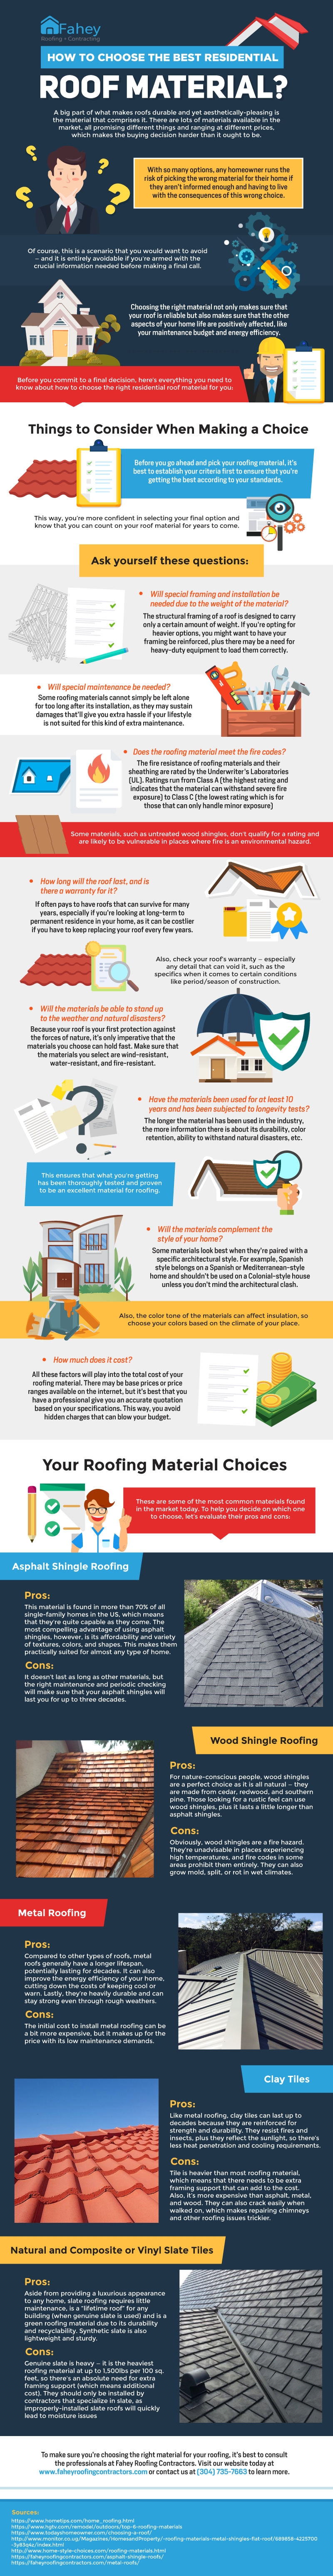 Pointers on How to Make the Right Choice for Roofing Material - Infographic